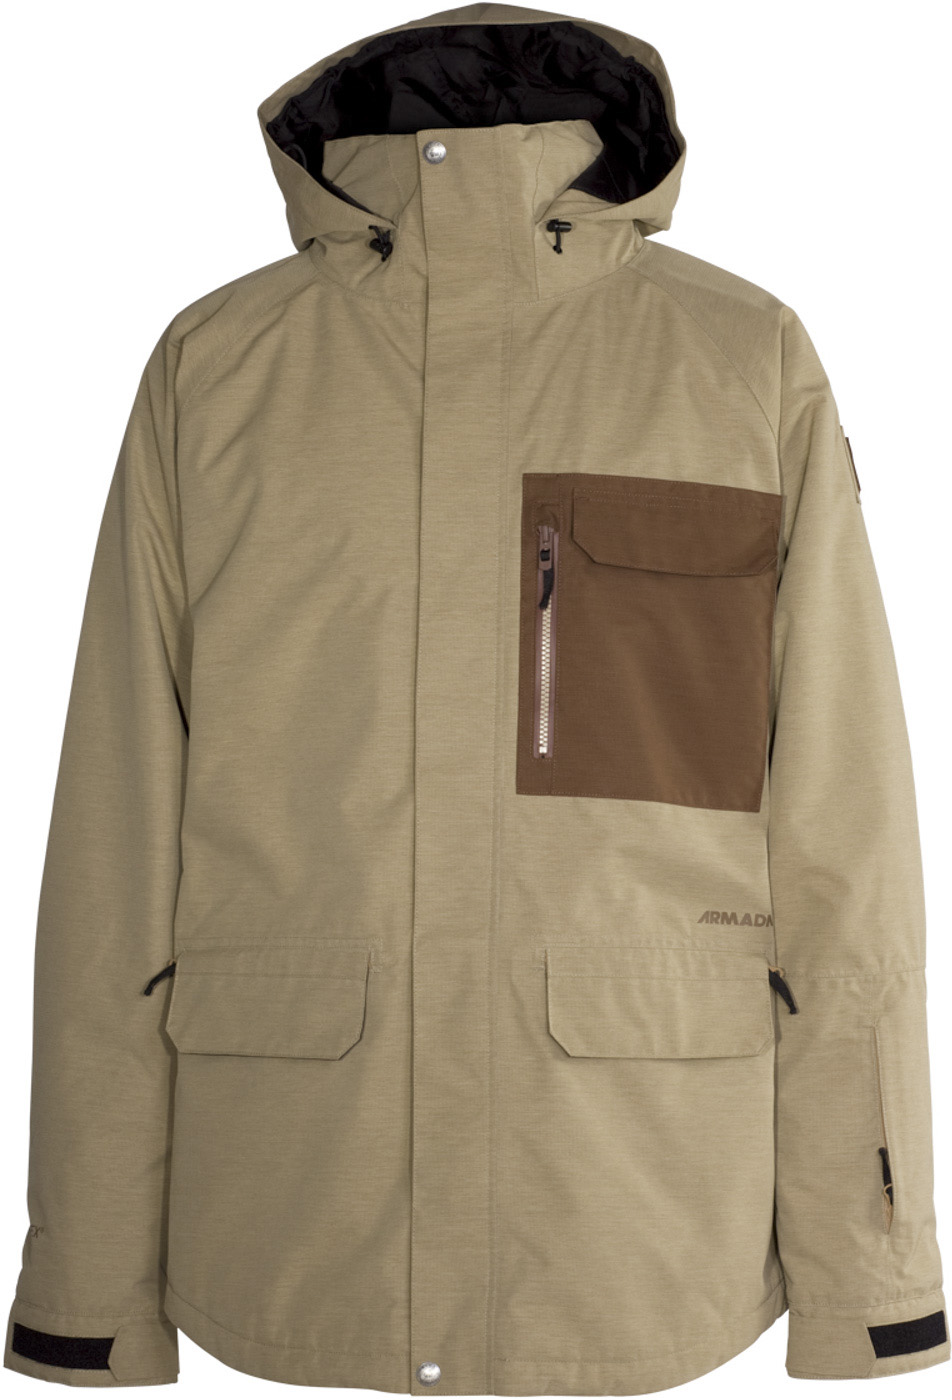 bunda ATKA GORE-TEX INSULATED JACKET khaki